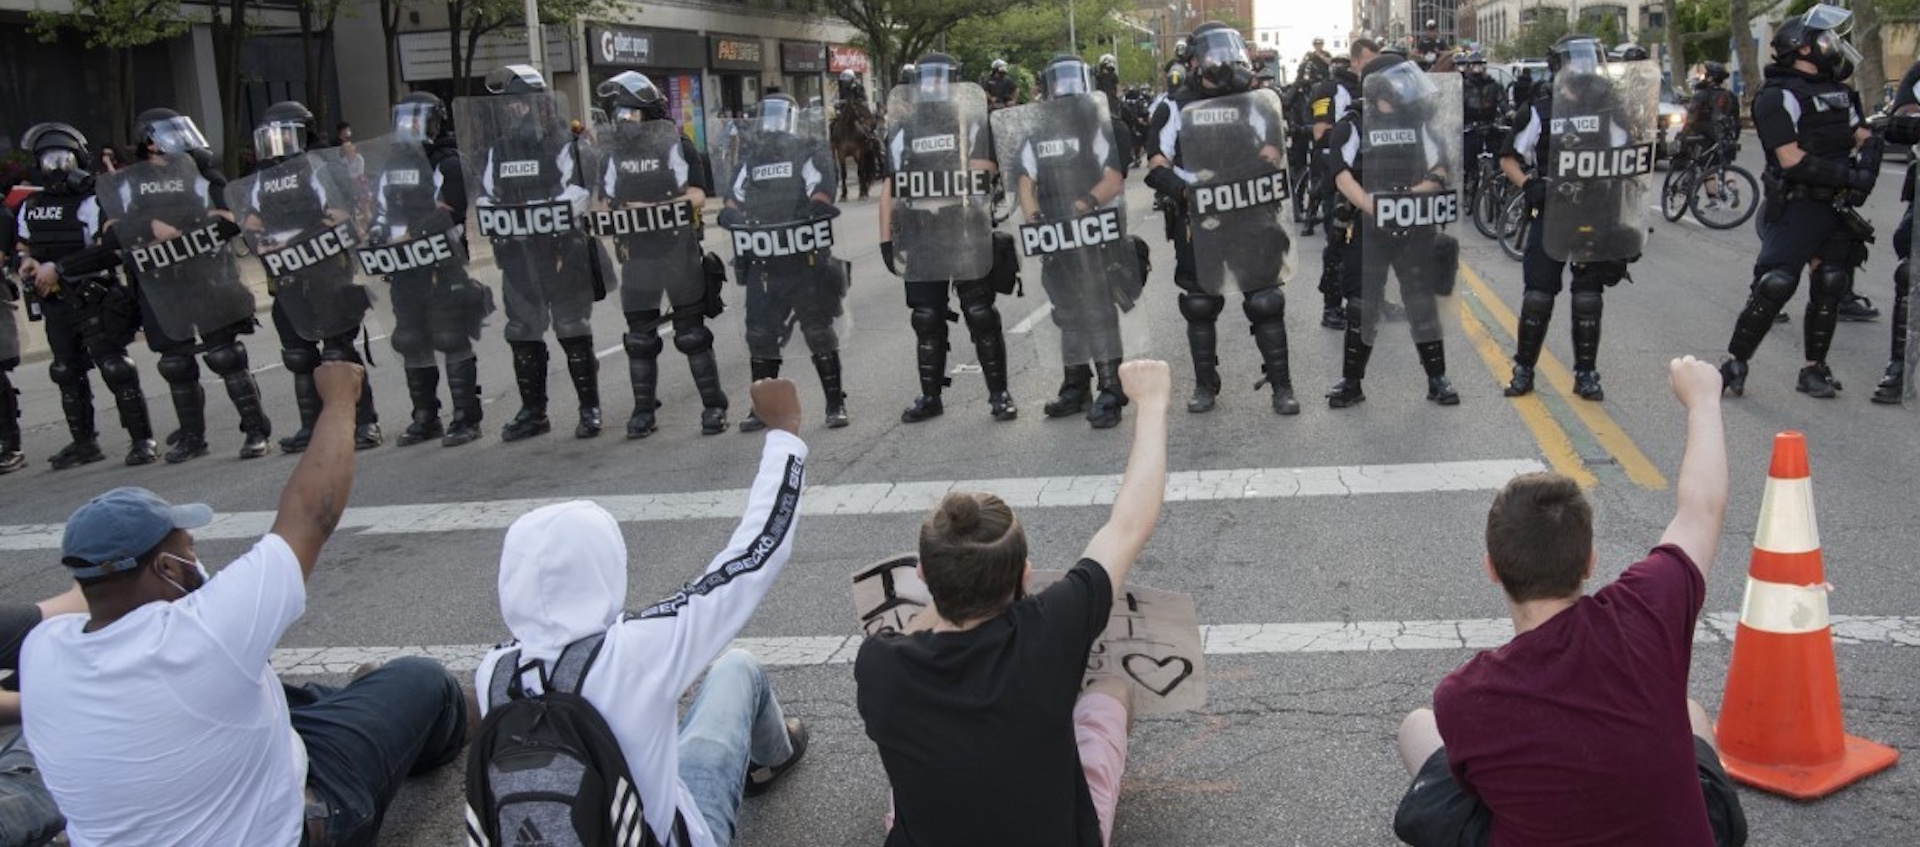 A line of four individuals protesting the death of George Floyd seated on the street, each with one fist raised, facing a line of police in riot gear